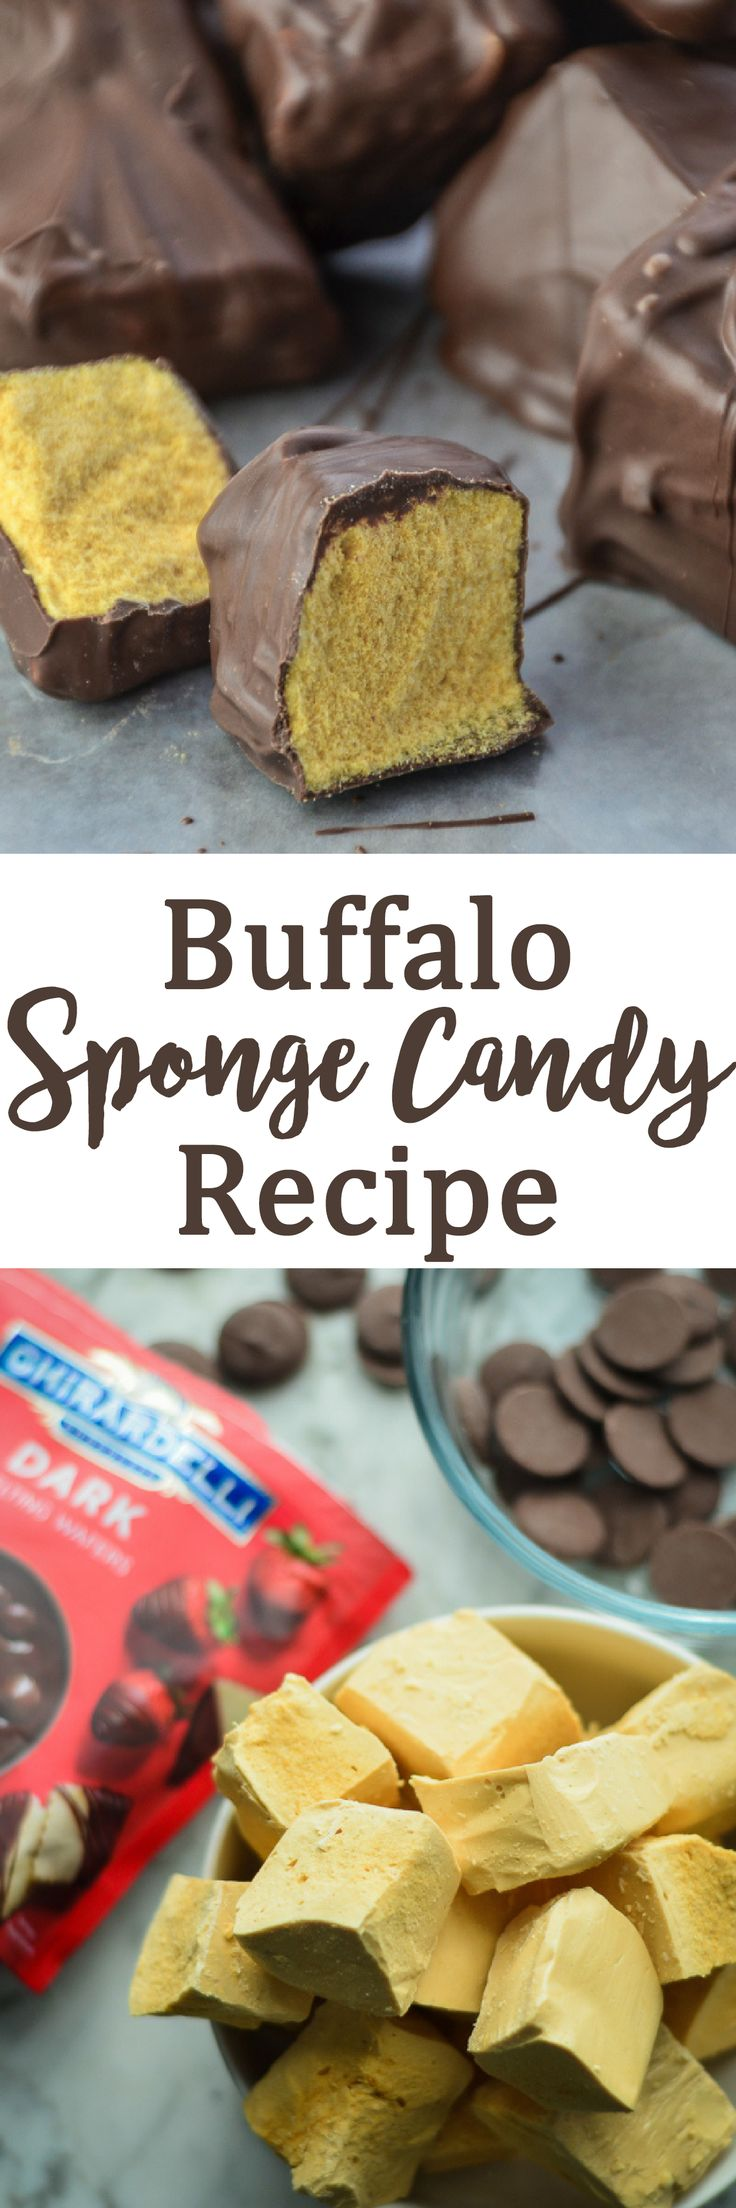 "Recipe for Homemade Buffalo Sponge Candy, with a light-as-air crispy ""sponge"" of aerated toffee, dipped in dark chocolate."